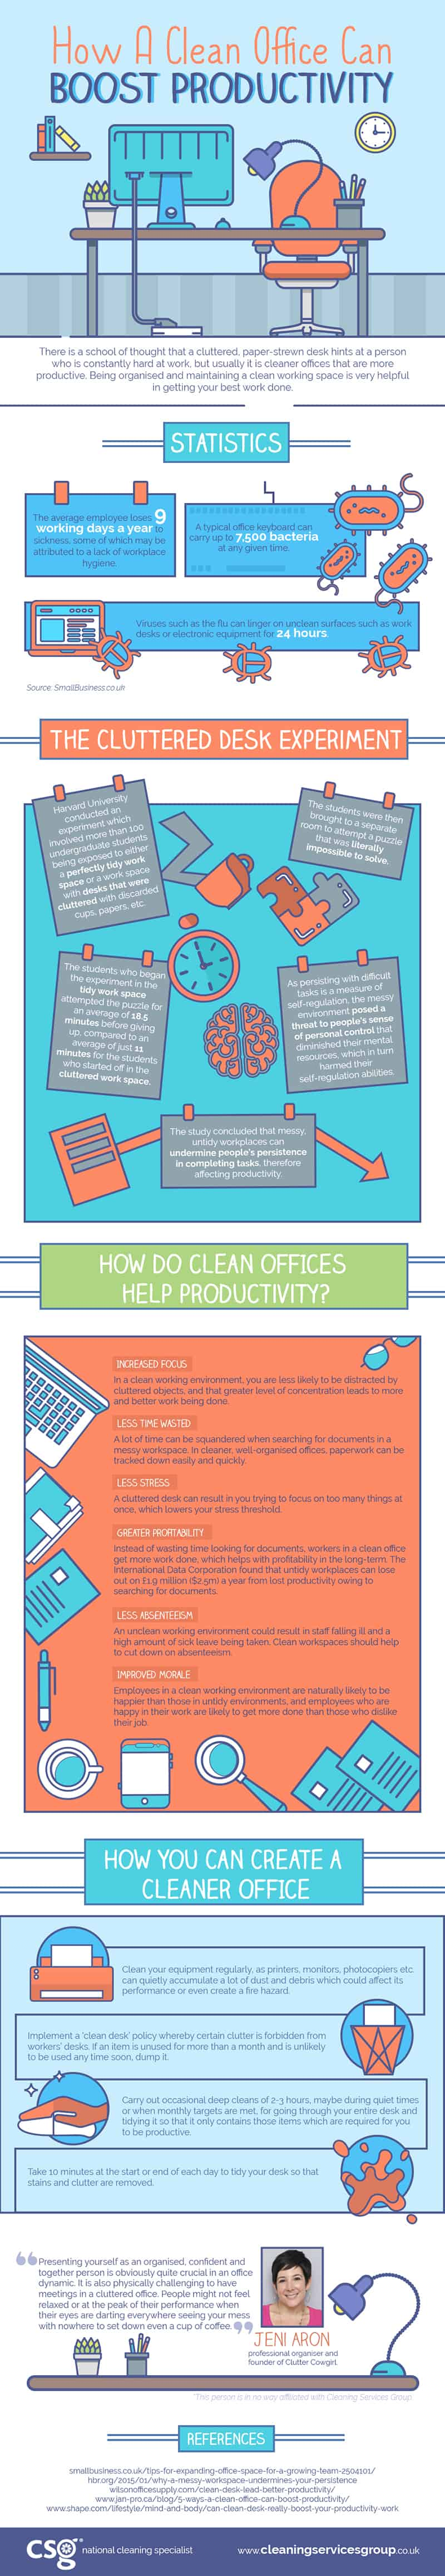 How a clean office can boost productivity infographic for Office design productivity research